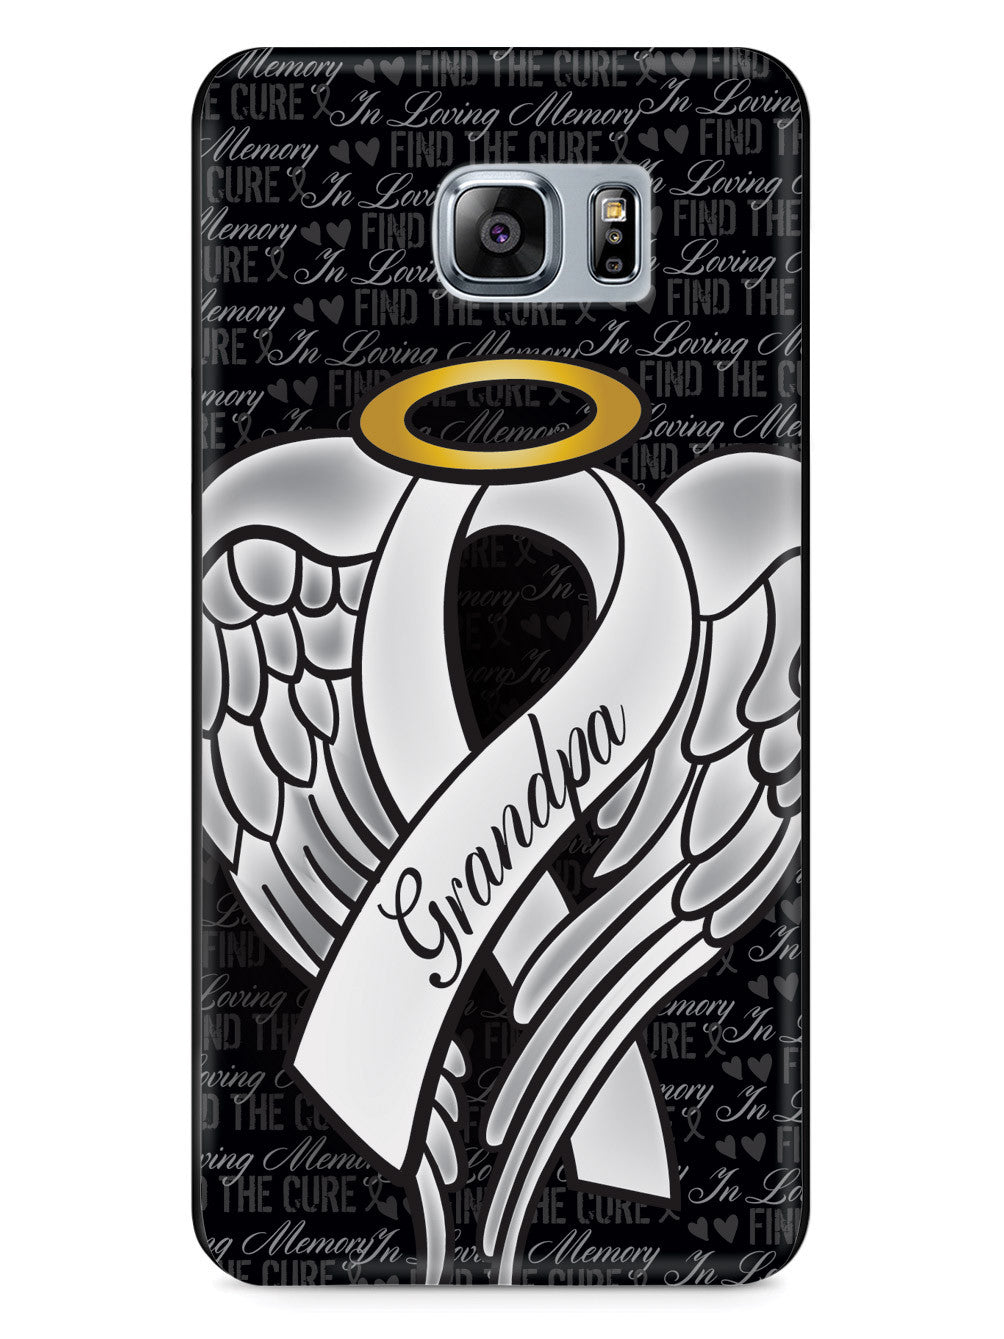 In Loving Memory of My Grandpa - White Ribbon Case